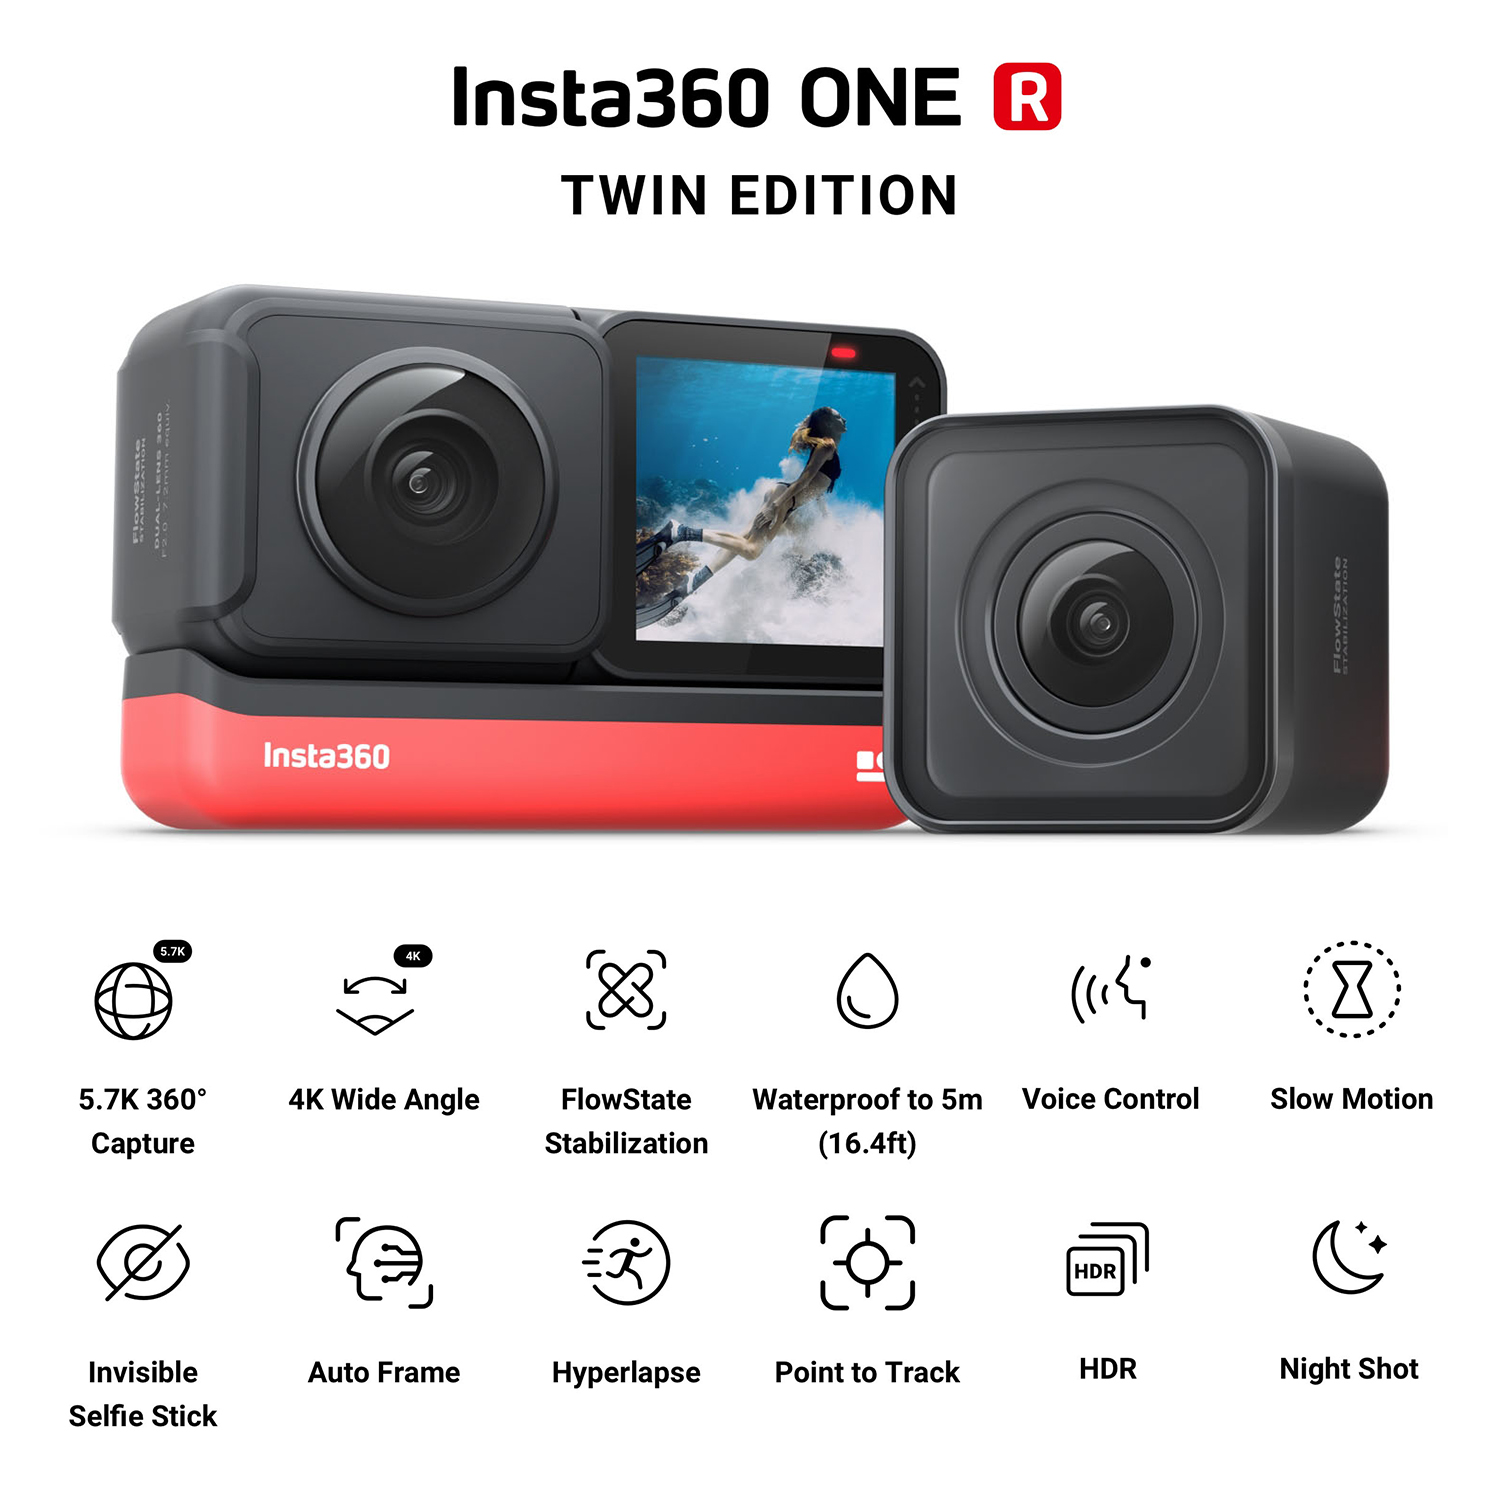 Insta360 ONE R Twin Edition Dual Lenses Anti-shake  Sports Action Camera (5.7K 360° Panorama Lens + 4K Wide Angle Lens) 5M 1